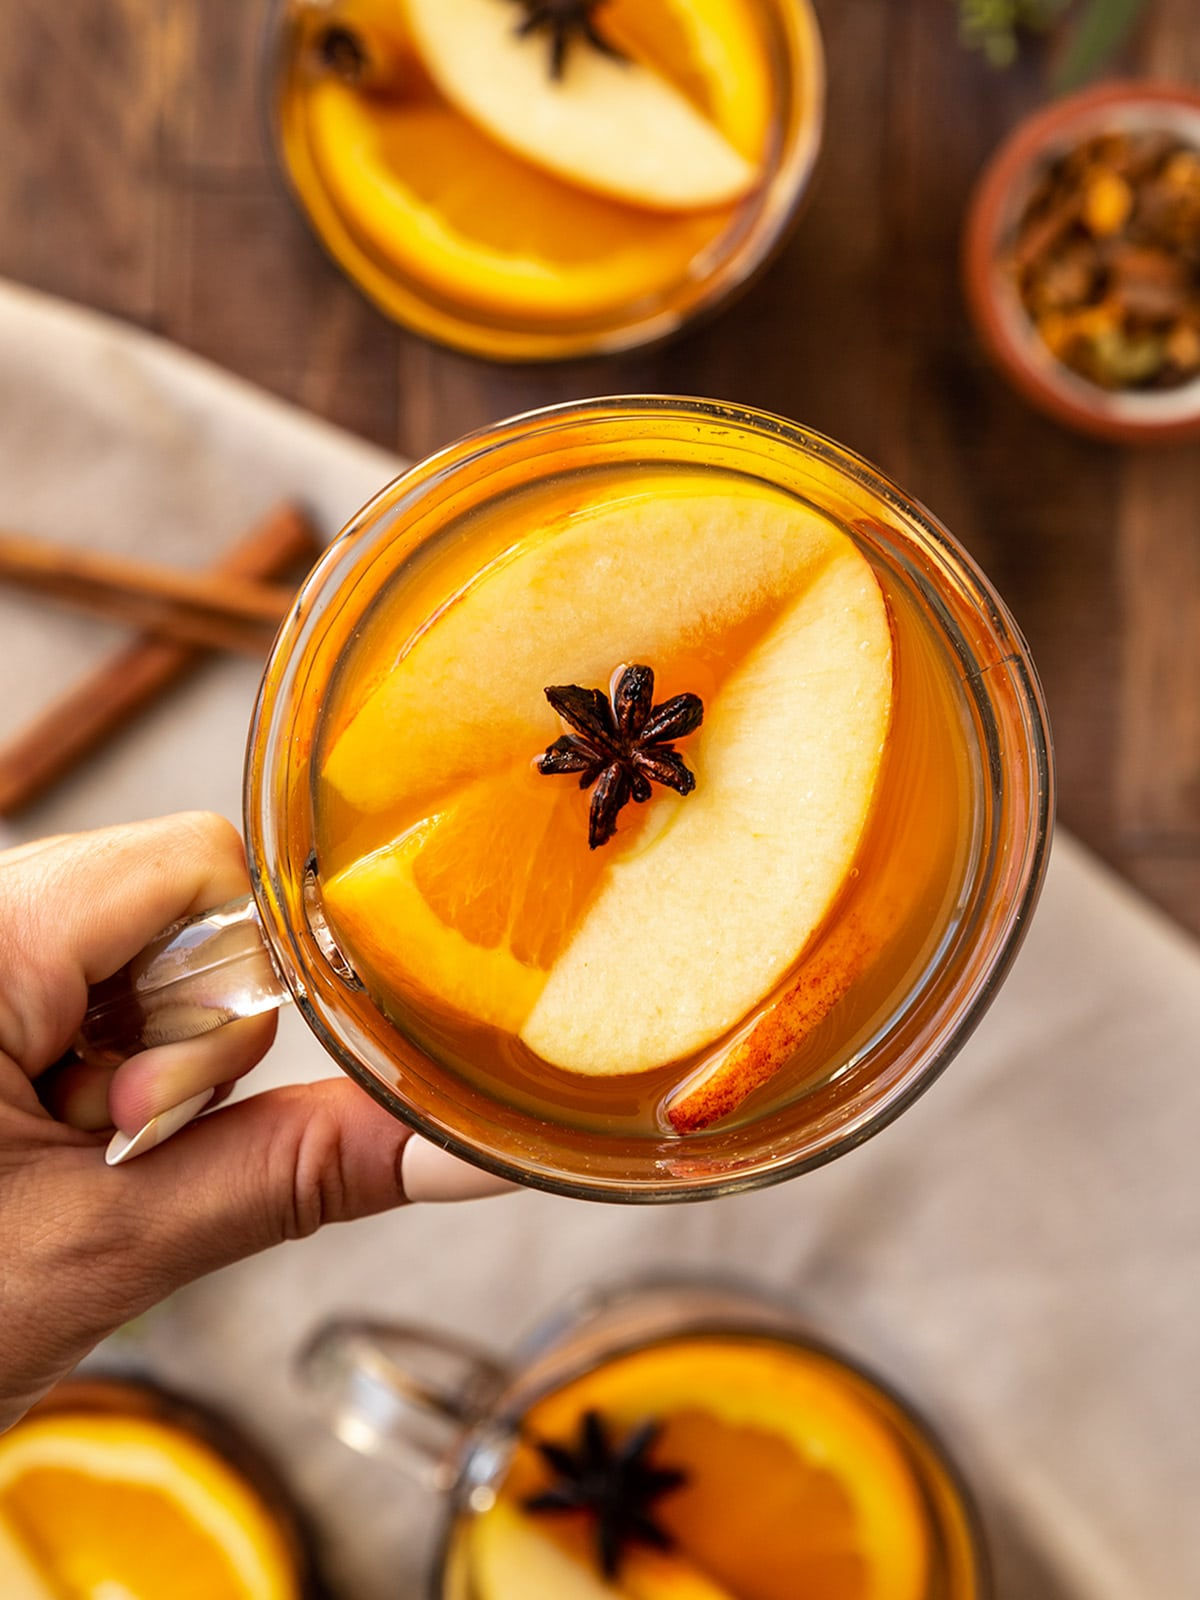 hand holding up a mug filled with hot cider garnished with apple slices, orange slices, and star anise on top